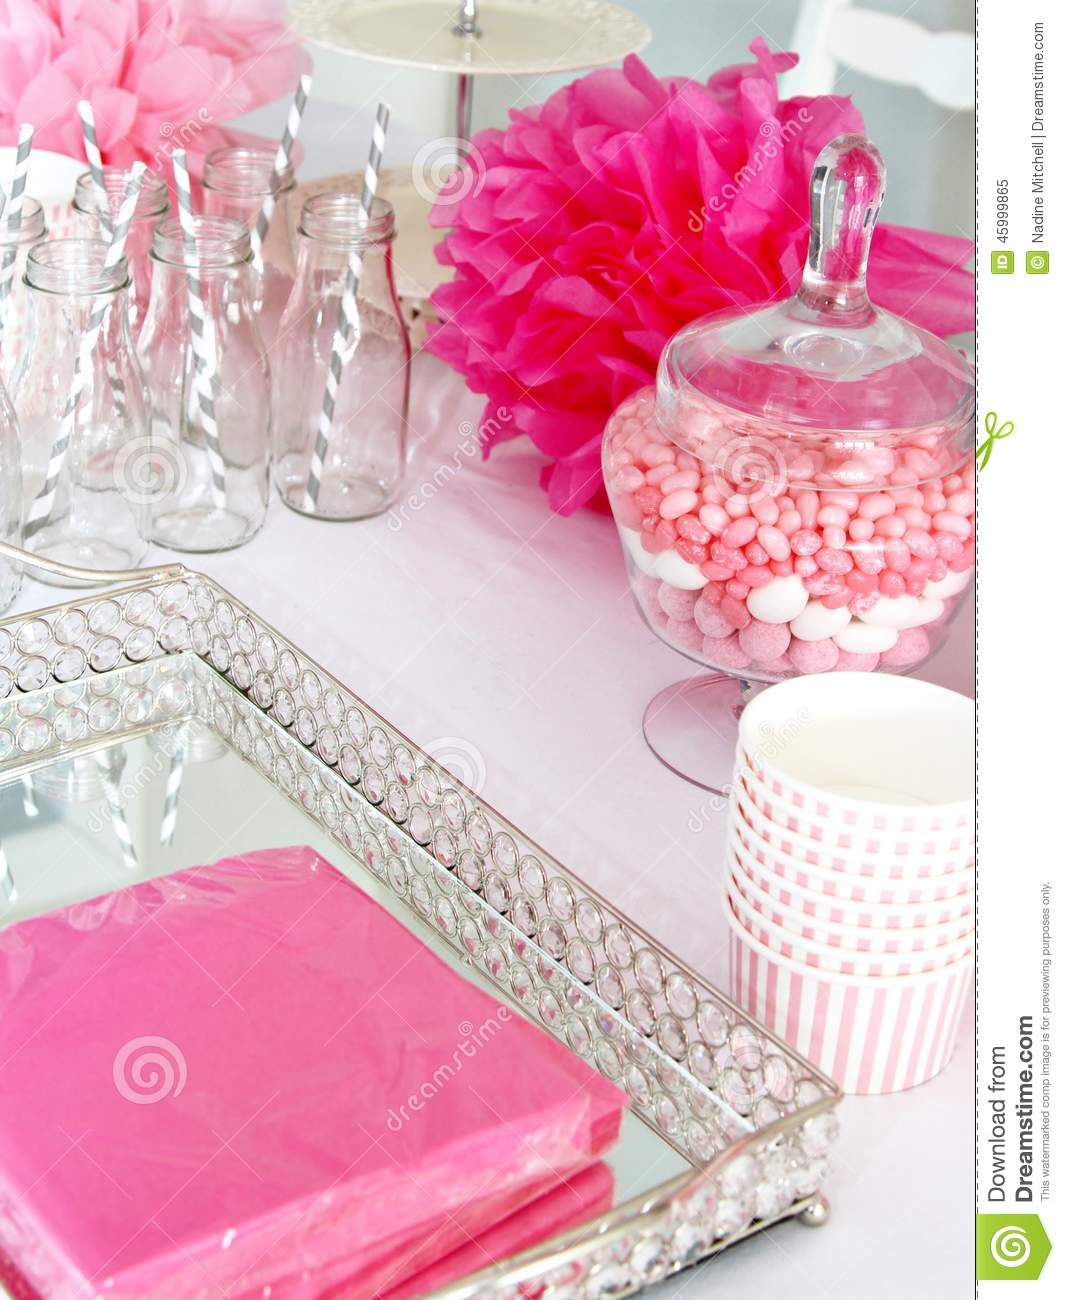 Paper cups mirrored tray napkins on a table with white tablecloth